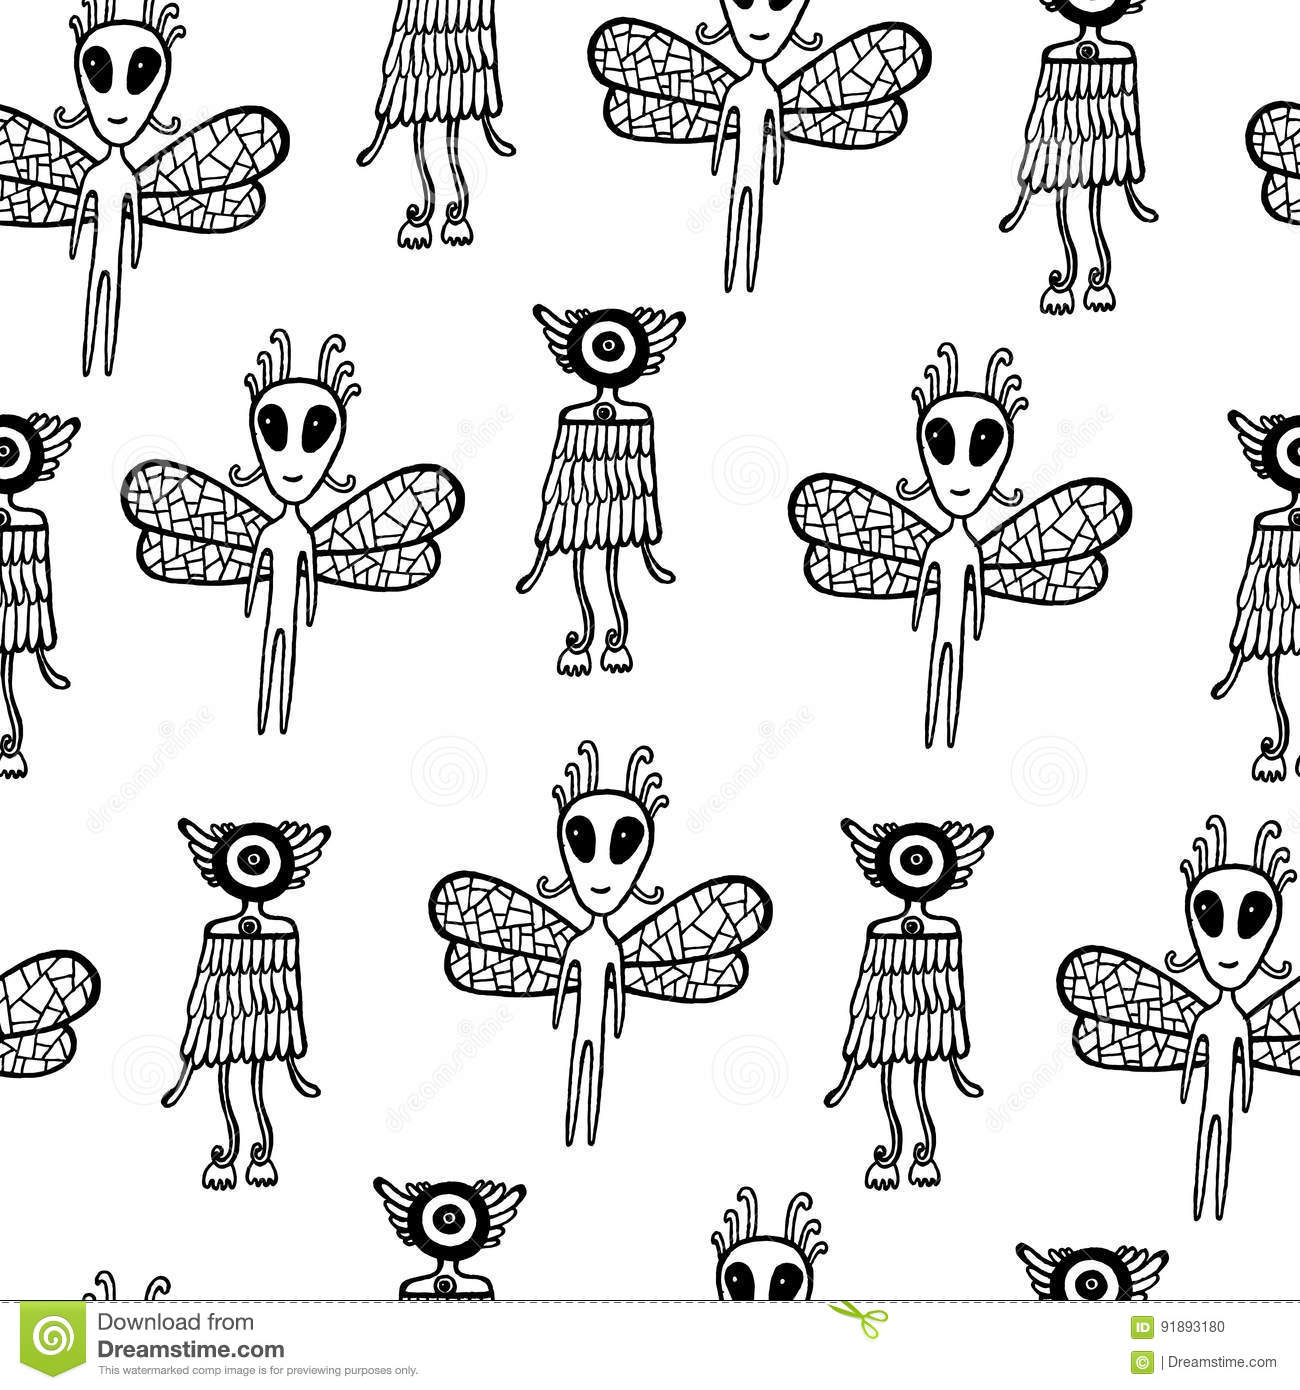 Ufo Alien Seamless Pattern. Hand Drawn Coloring Page For Kids An ...